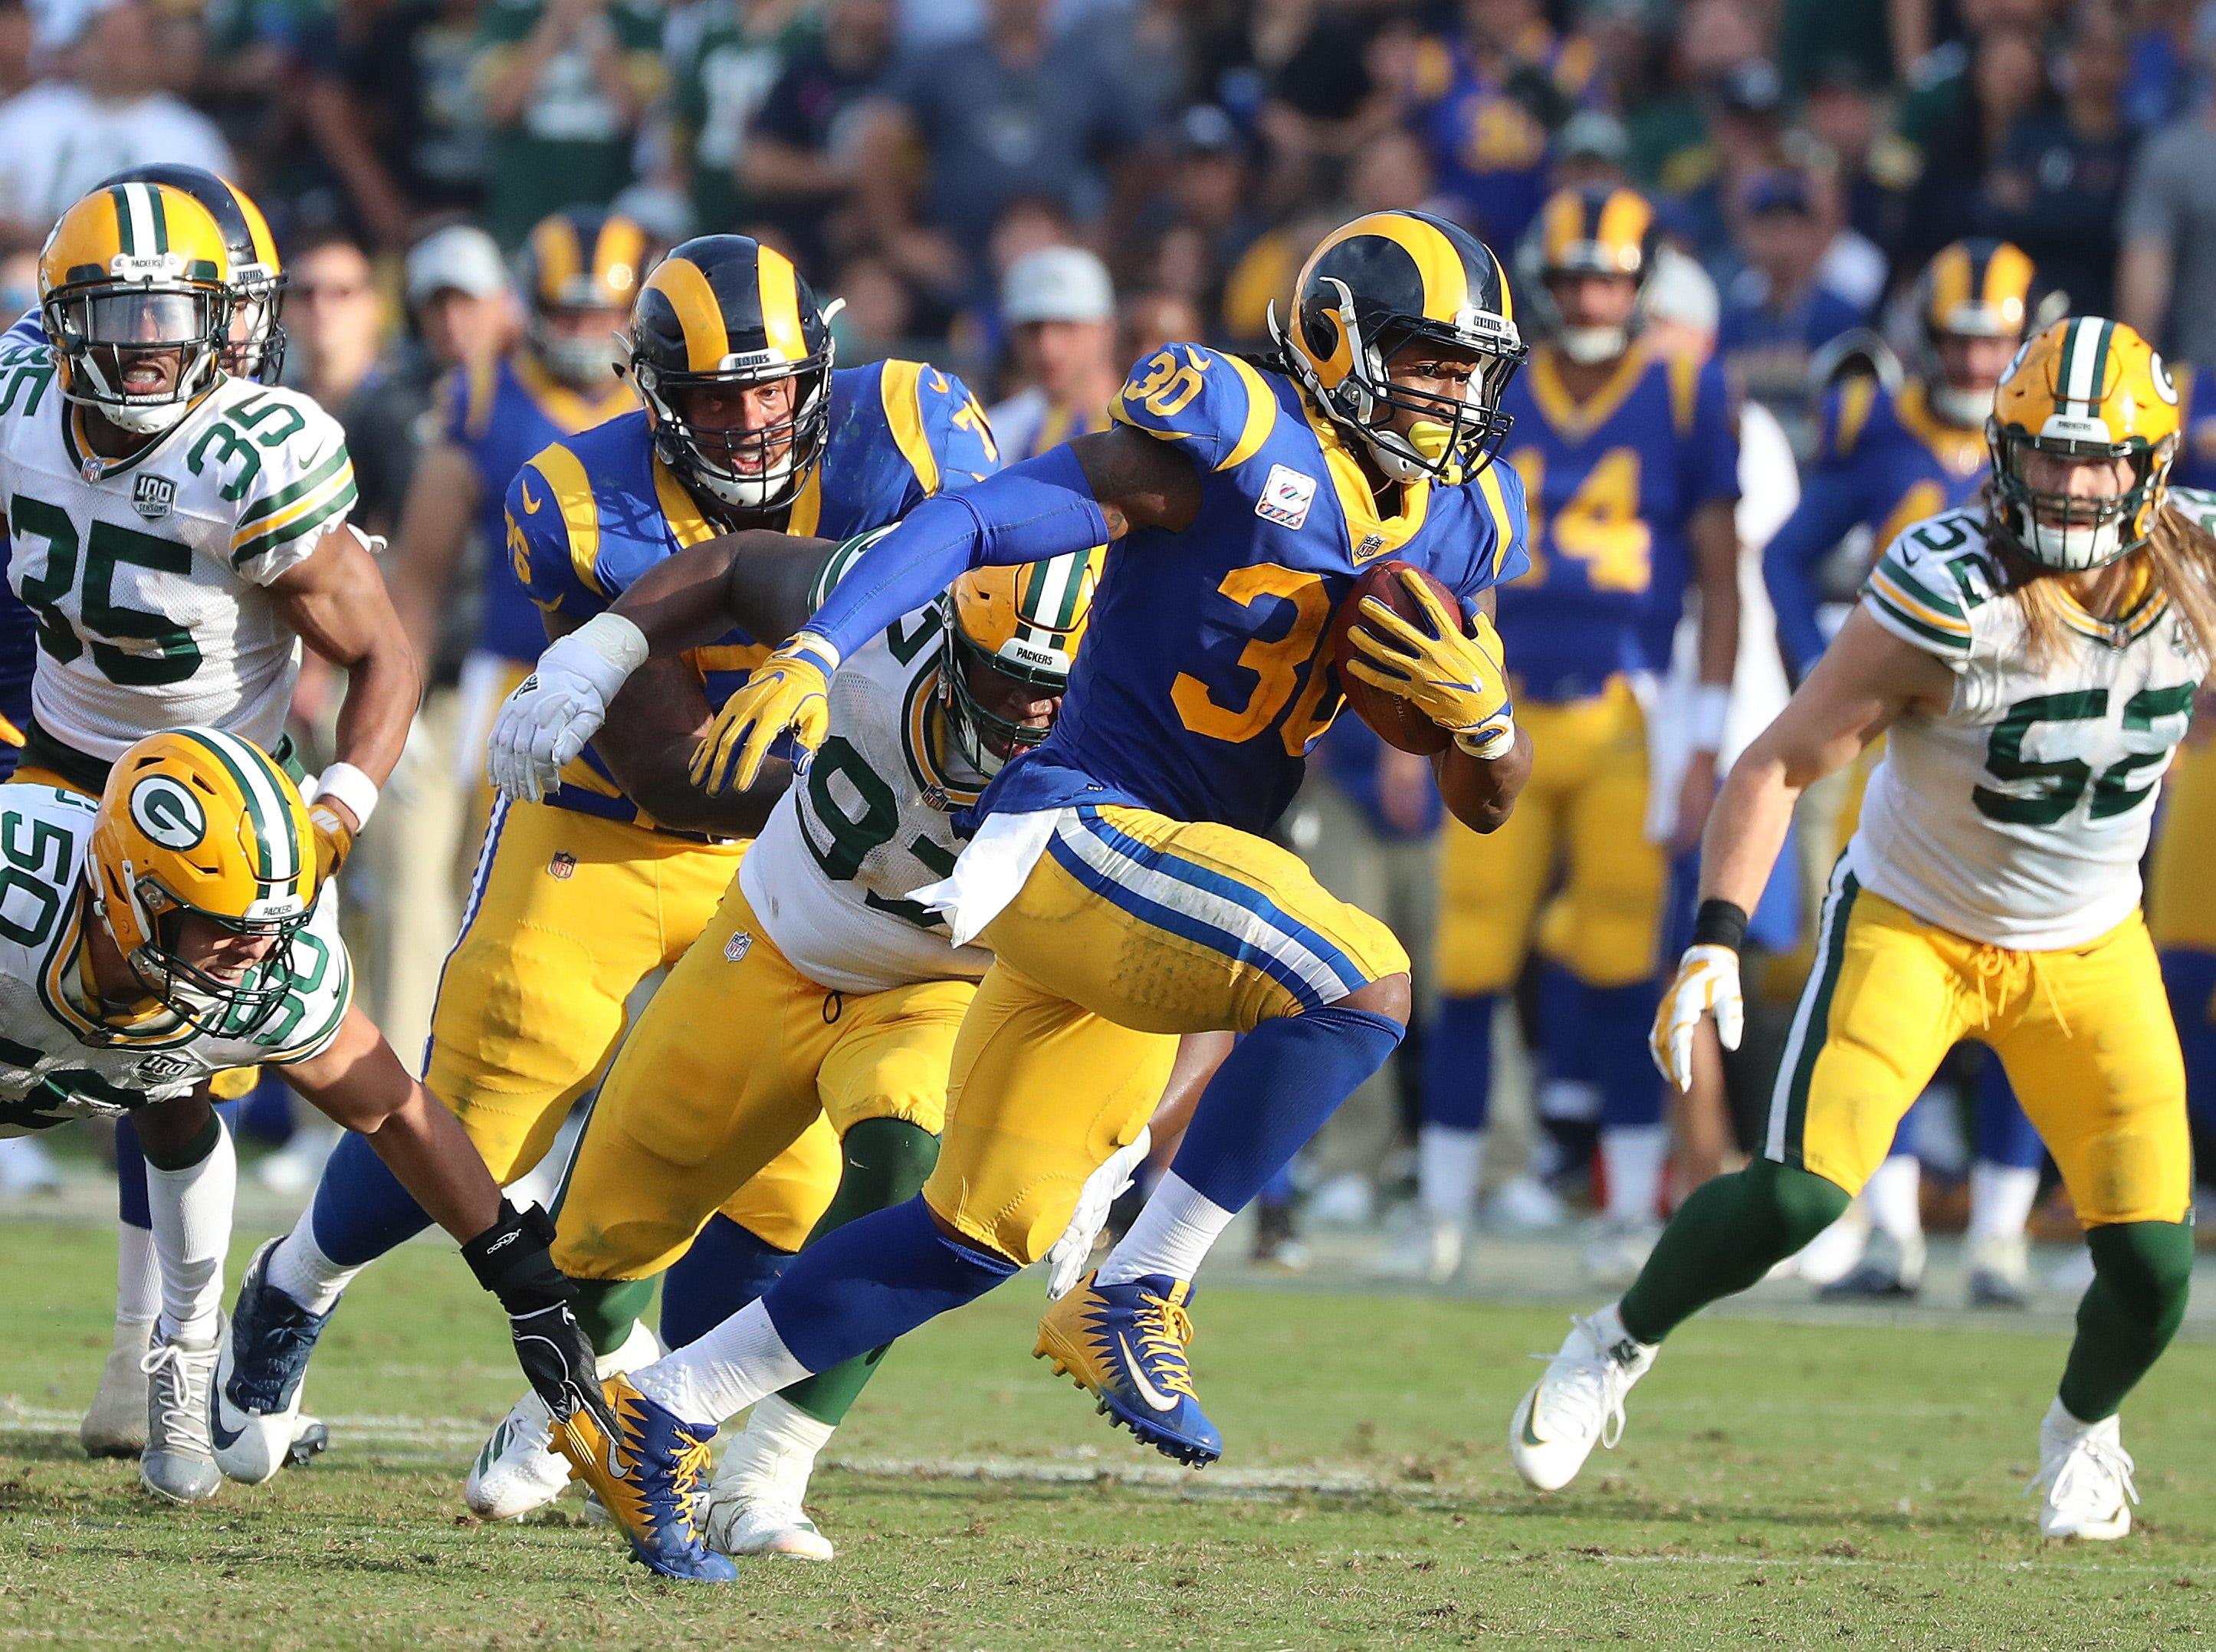 Green Bay Packers defenders watch as running back Todd Gurley (30) runs up the middle   against the LA Rams Sunday, October 28, 2018 at the Memorial Coliseum in Los Angeles.